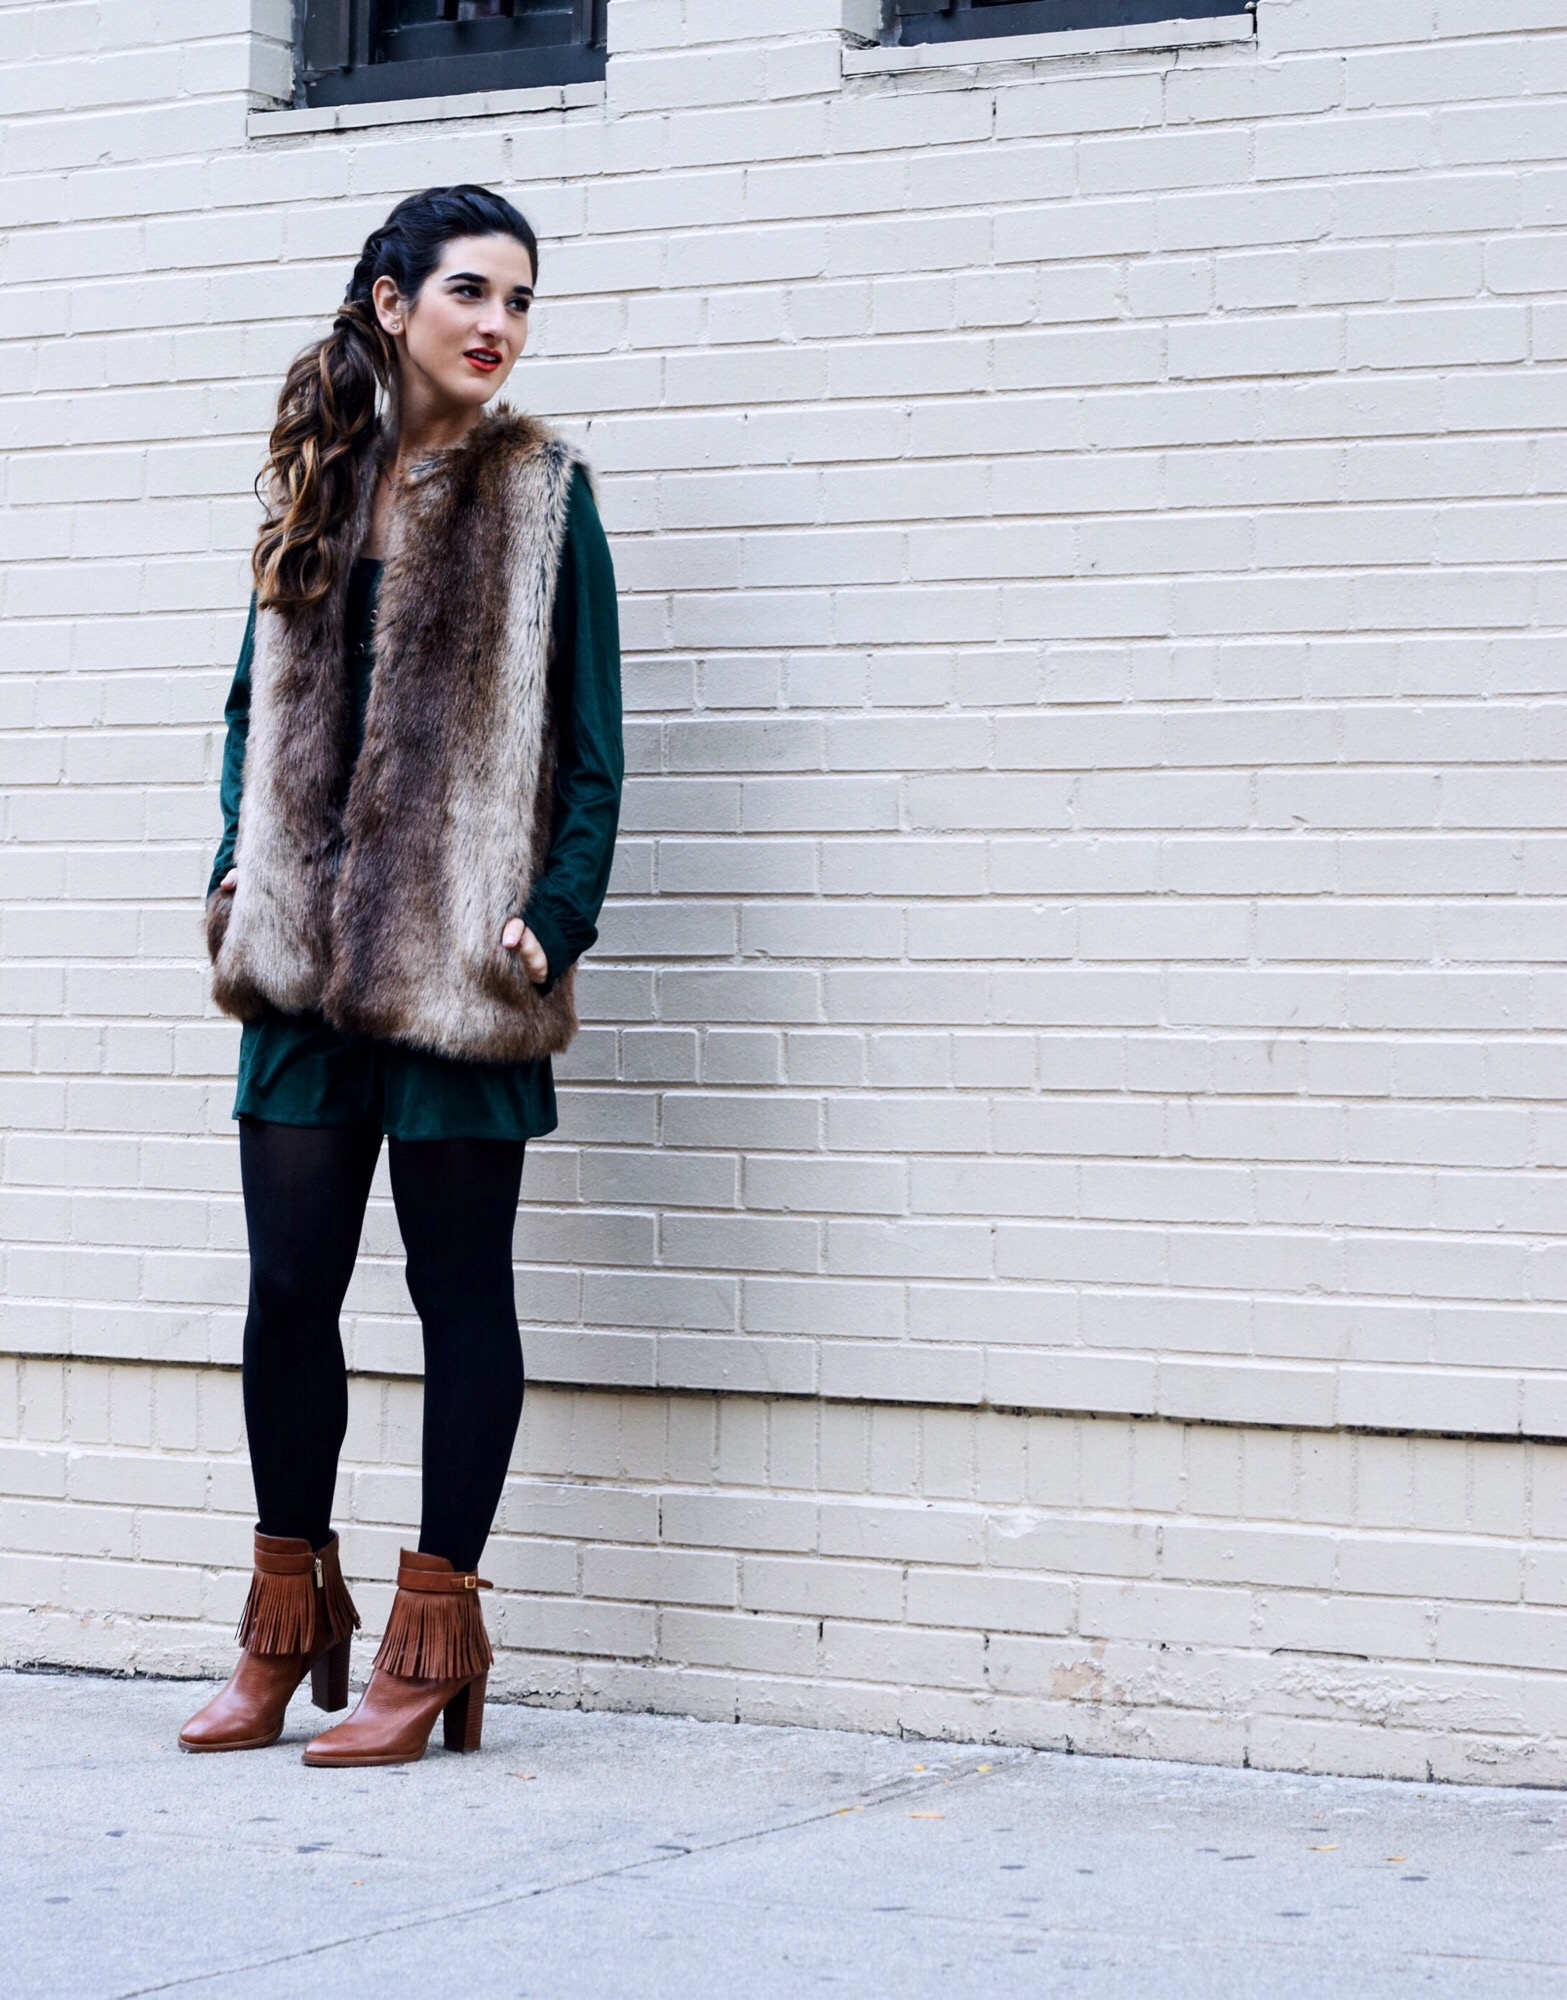 Suede Eyelet Dress Trescool Louboutins & Love Fashion Blog Esther Santer Street Style NYC Blogger Fall Winter Black Tights Ivanka Trump Fringe Booties Camel Hair Girl Women Beautiful Photoshoot Model Outfit OOTD Fur Vest Zara Trendy Inspo What To Wear.JPG